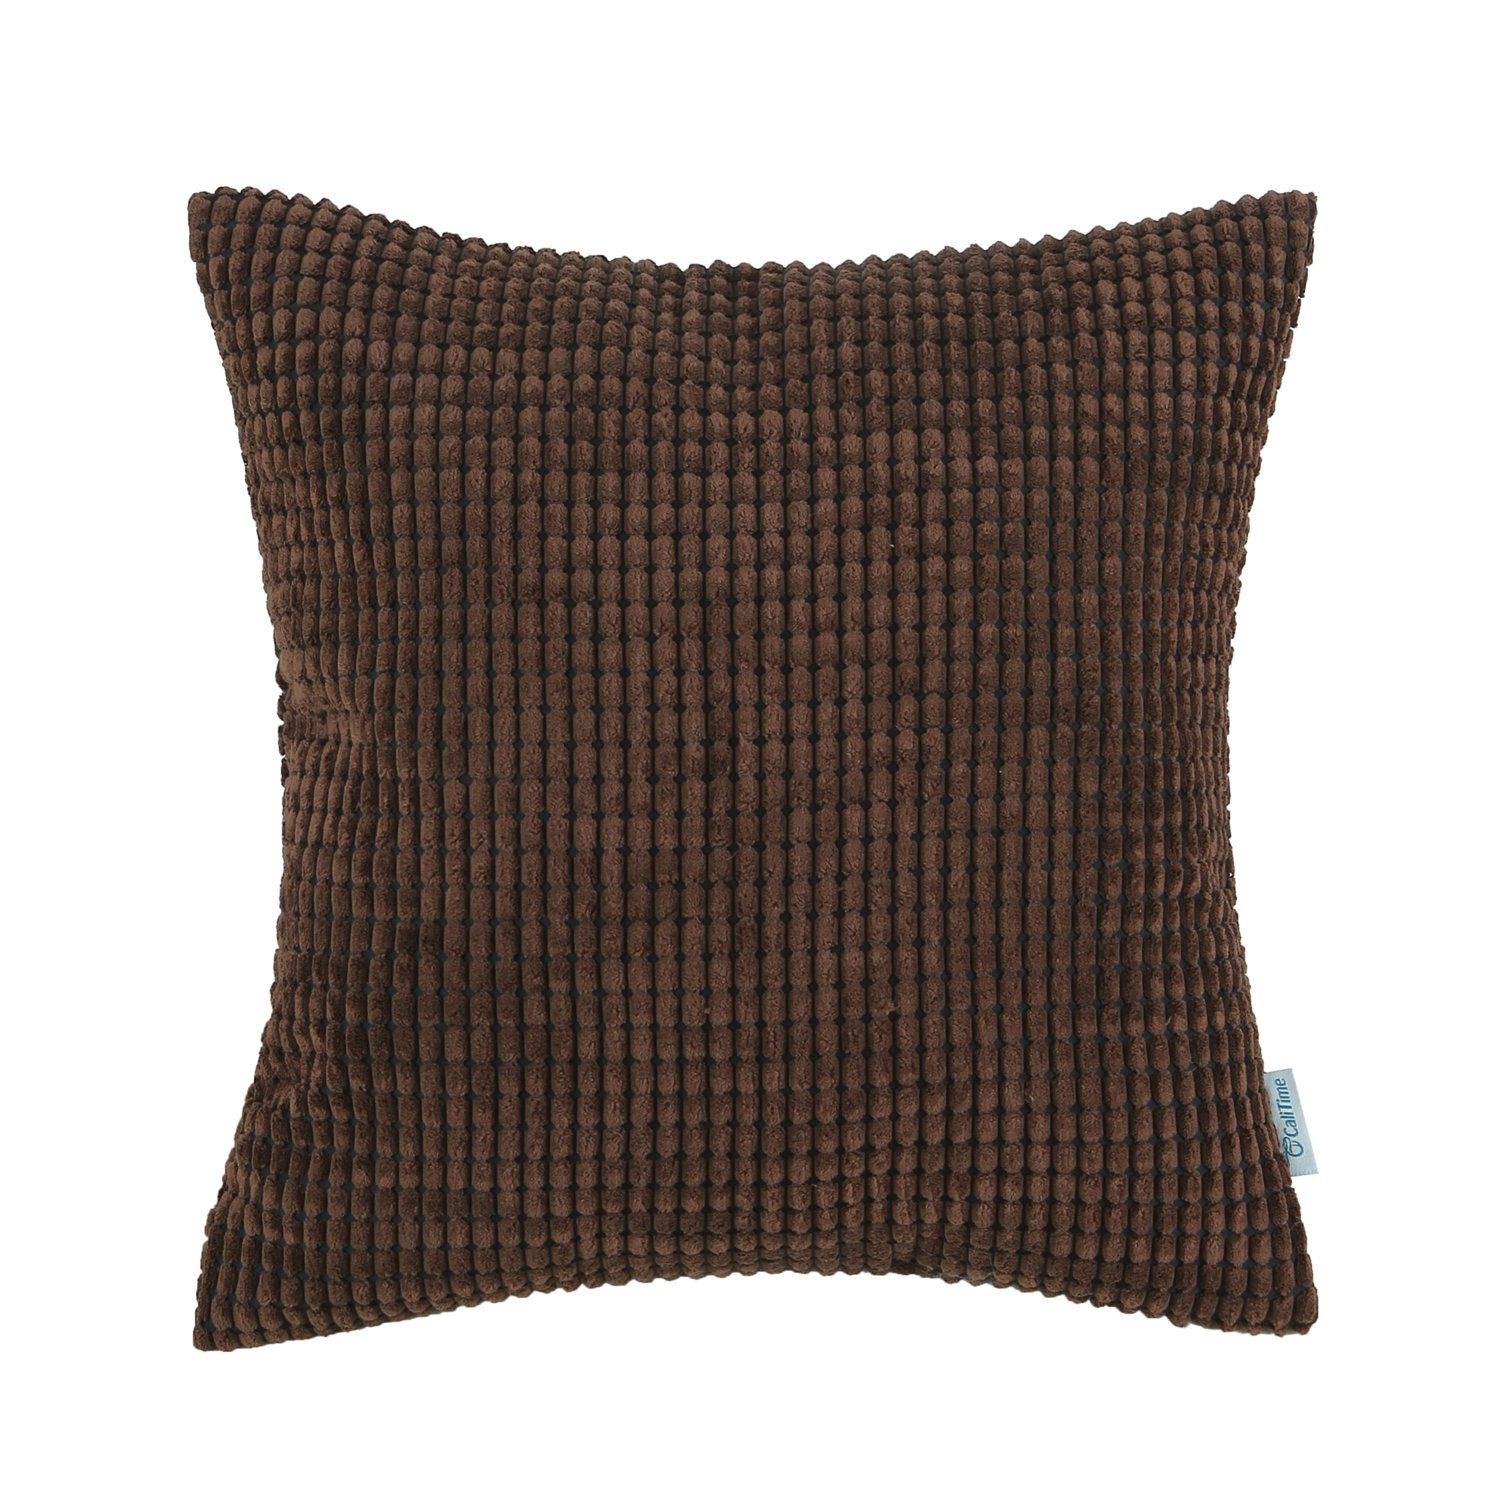 CaliTime Cozy Throw Pillow Cover Case for Couch Sofa Bed Comfortable Supersoft Corduroy Corn Striped Both Sides 24 X 24 Inches Coffee